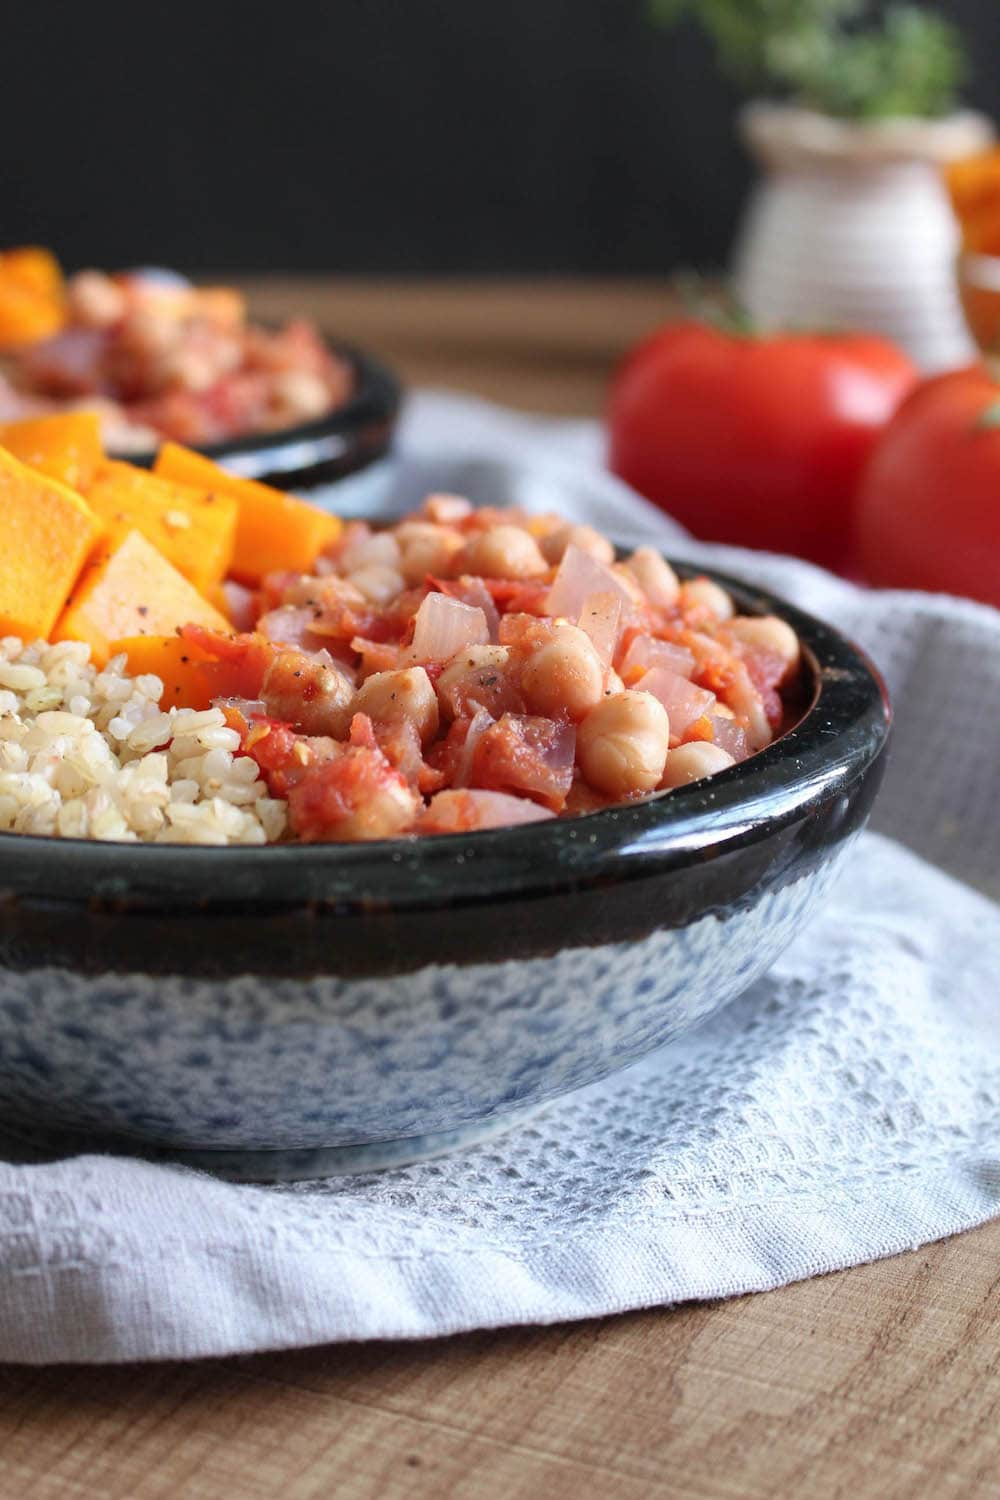 Cumin Chickpeas with Tomato | The Conscientious Eater